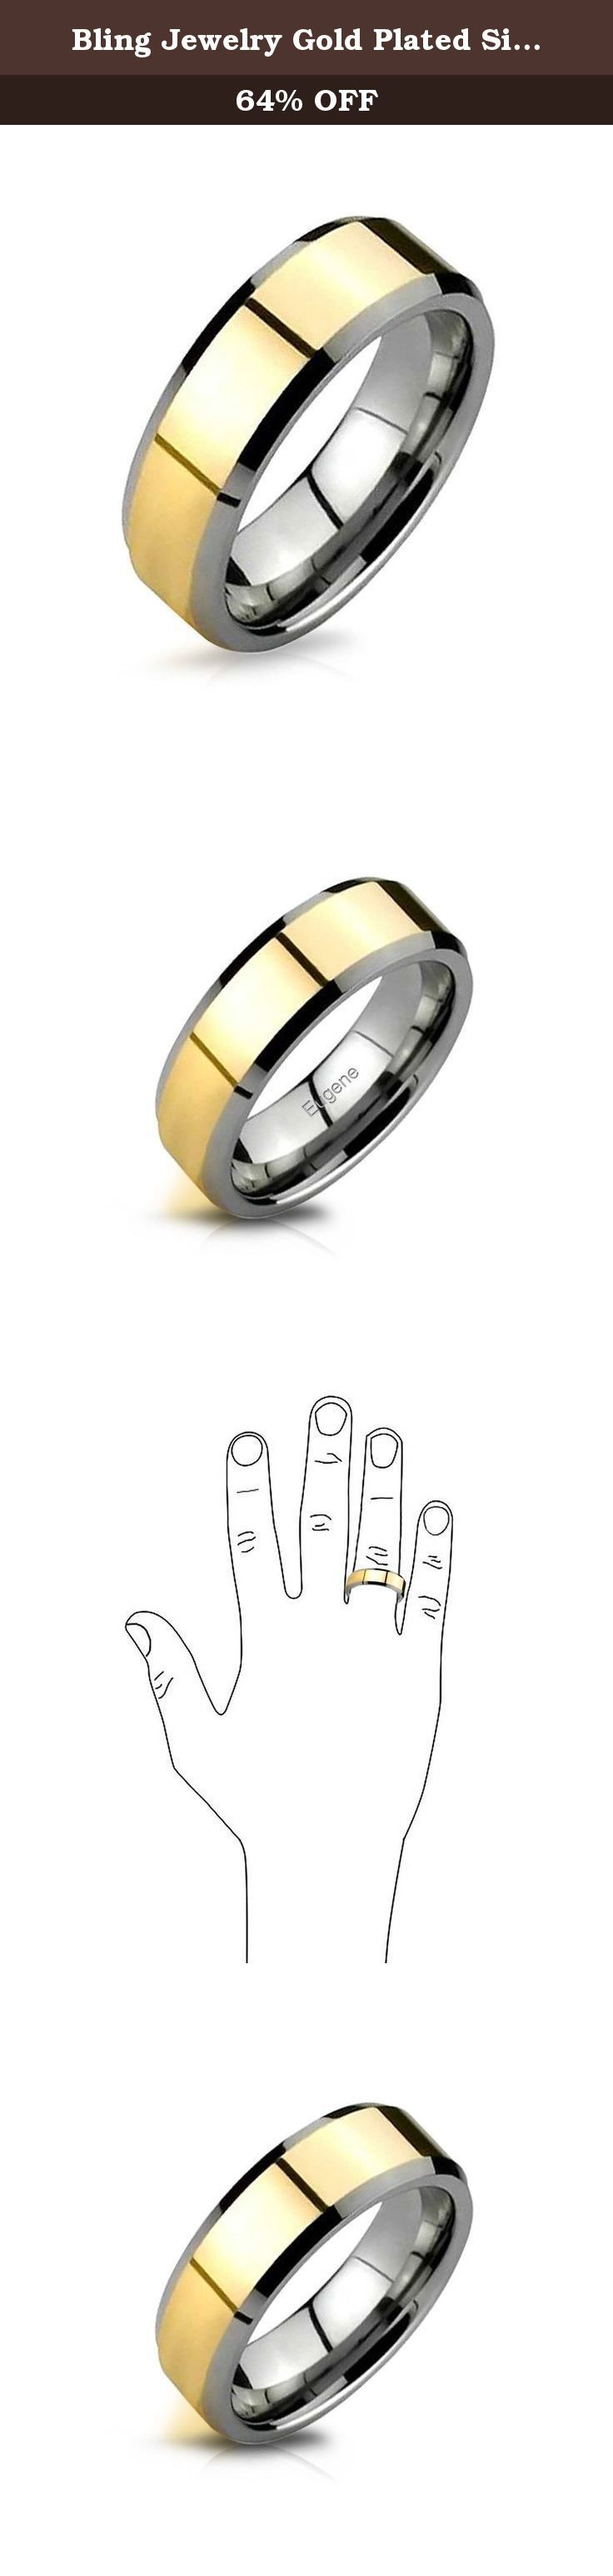 Bling Jewelry Gold Plated Silver Tungsten Beveled Ring 8mm. This mens wedding band is a picture of sophistication and class. You can take this striking two tone tungsten band and use it in whatever way you wish. These bold tungsten wedding bands for men can be worn casually, for special occasions or all the time, as a symbol of your devotion to your loved one. These tungsten rings for men boast an incredibly strong material which is excellent at resisting tarnishing of any kind, leaving…